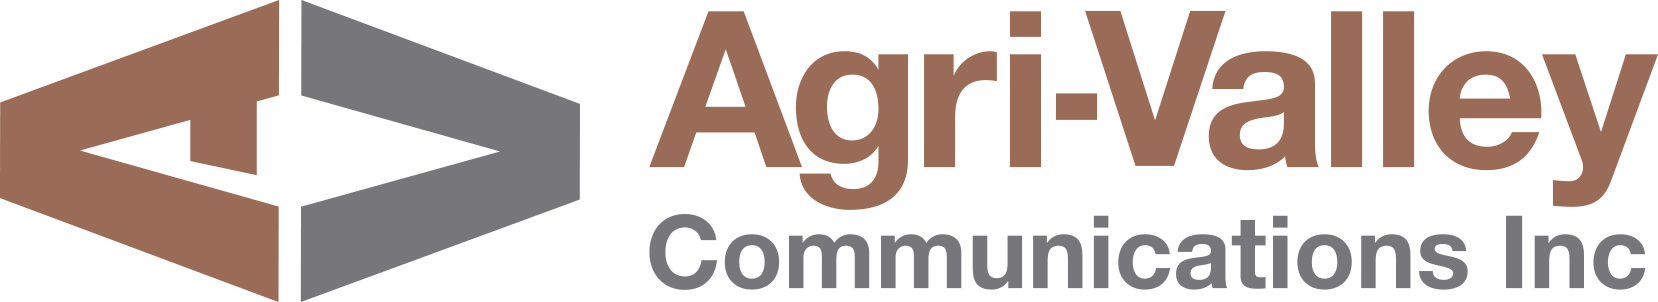 Agri-Valley Communications Inc Logo